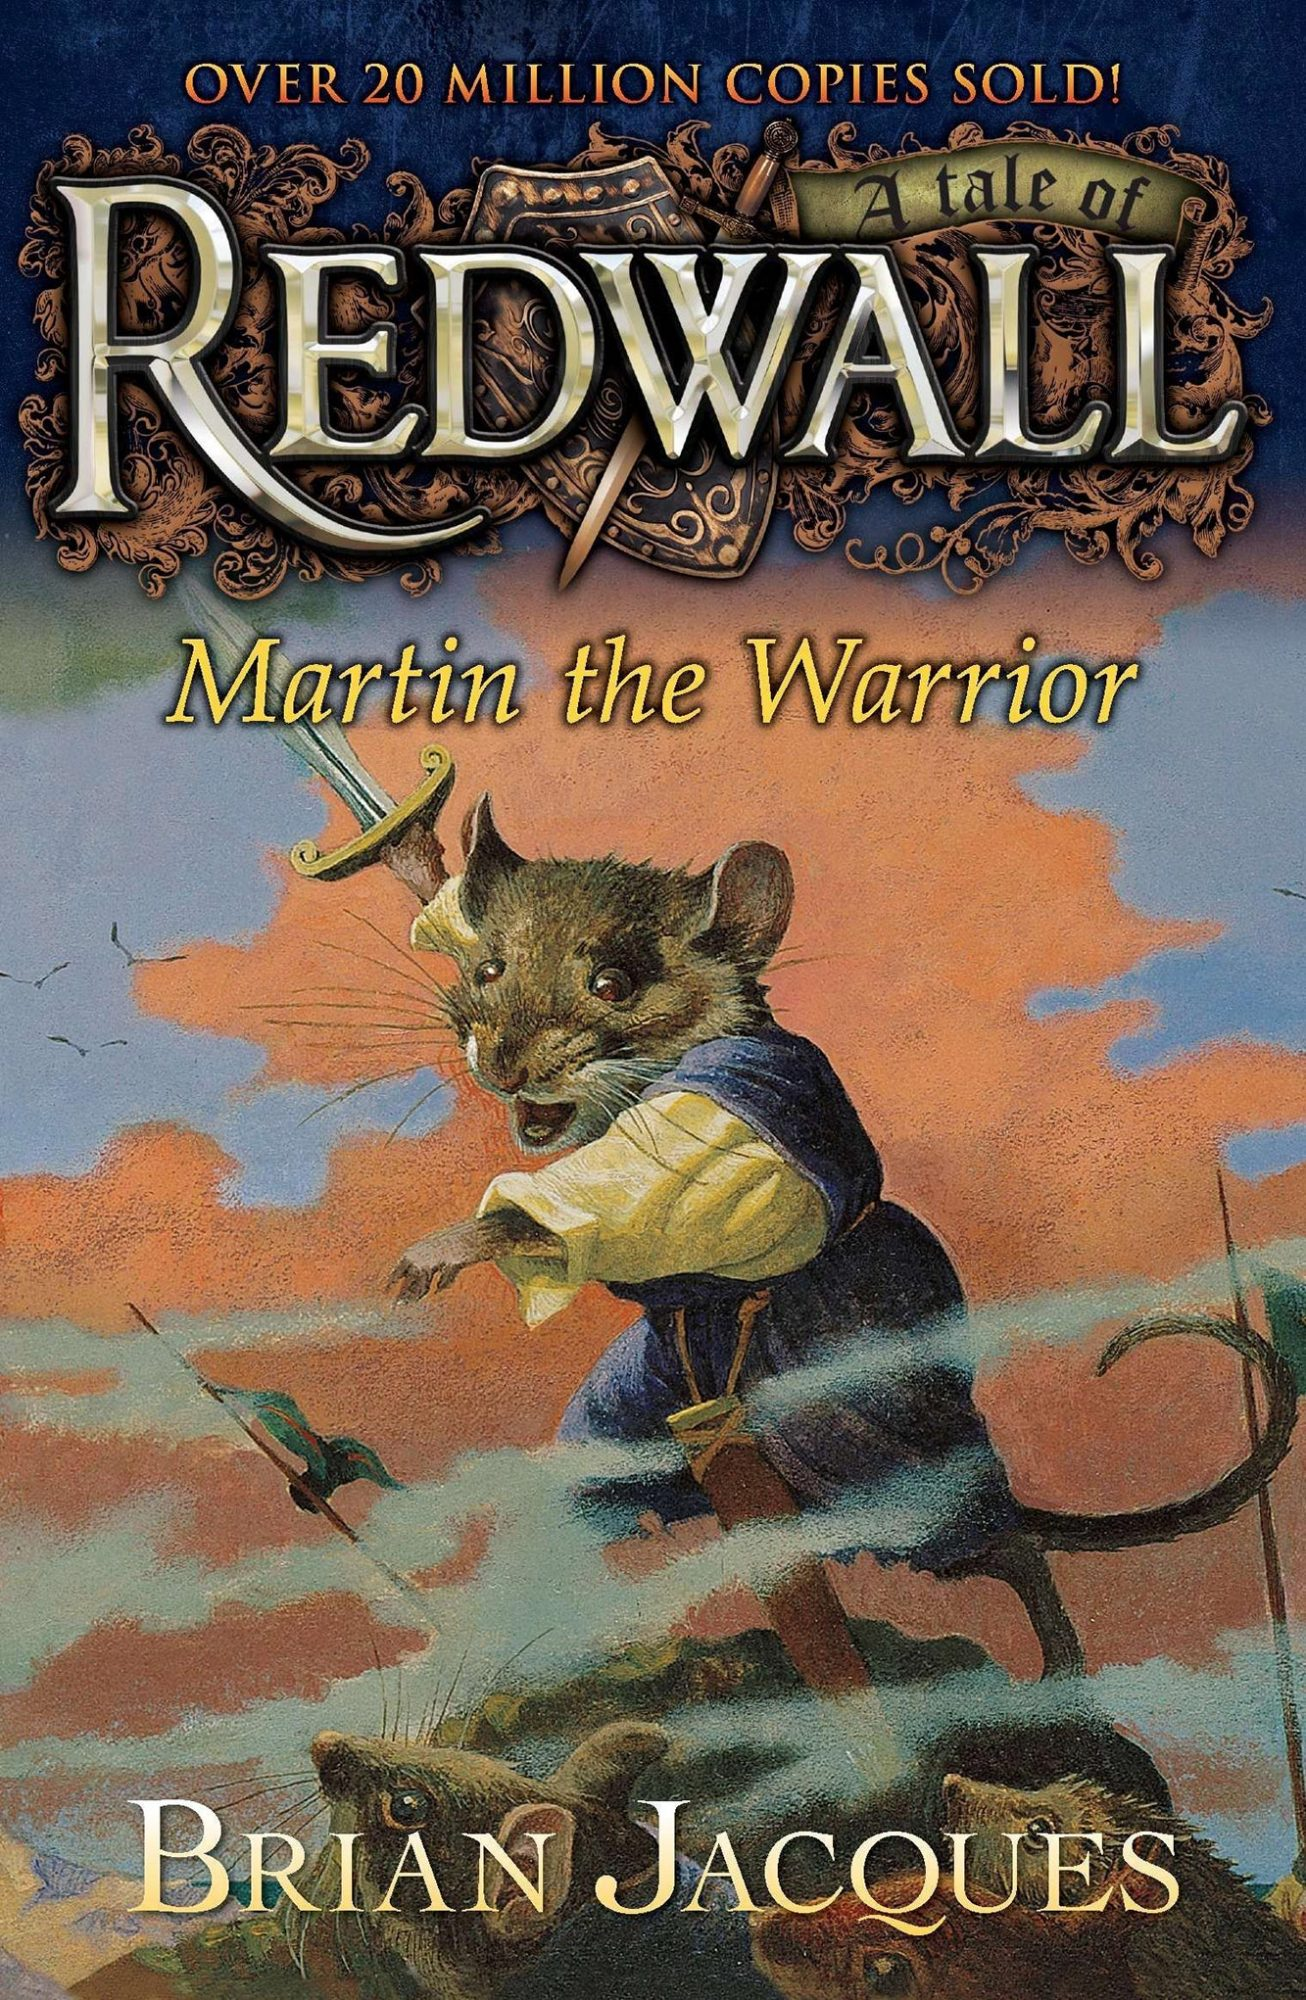 Redwall Martin the Warrior by Brian Jacques